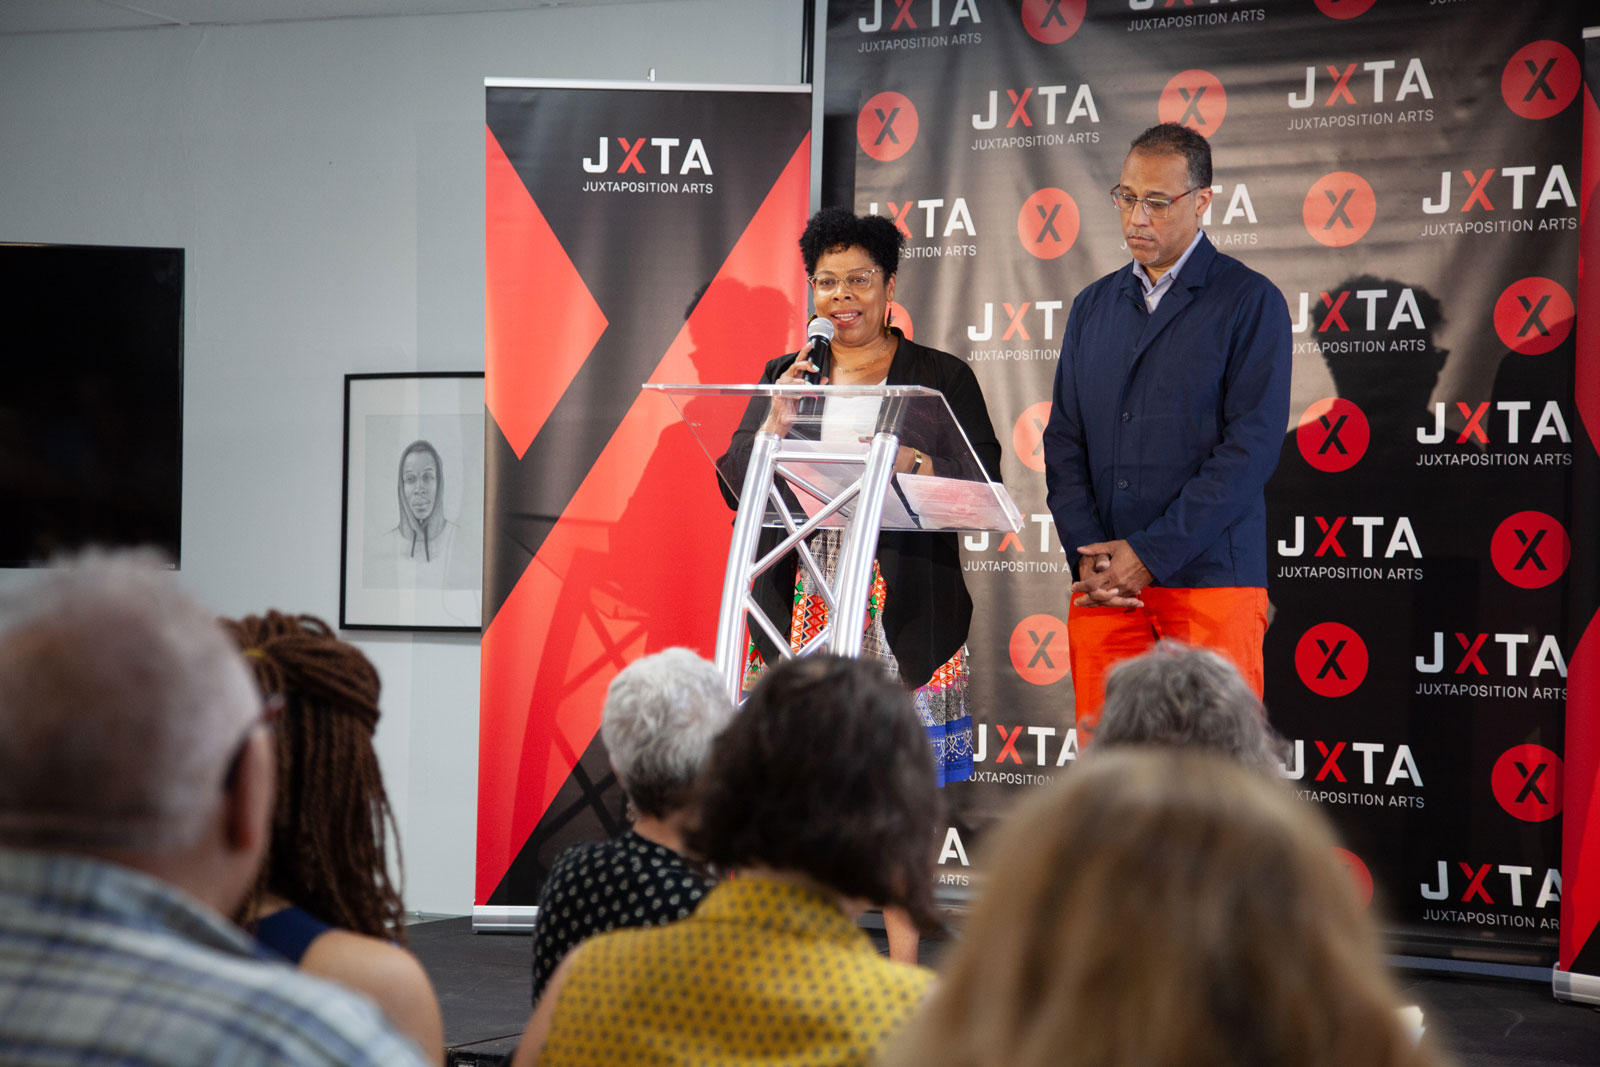 Two people stand at a podium and talk to a crowd.